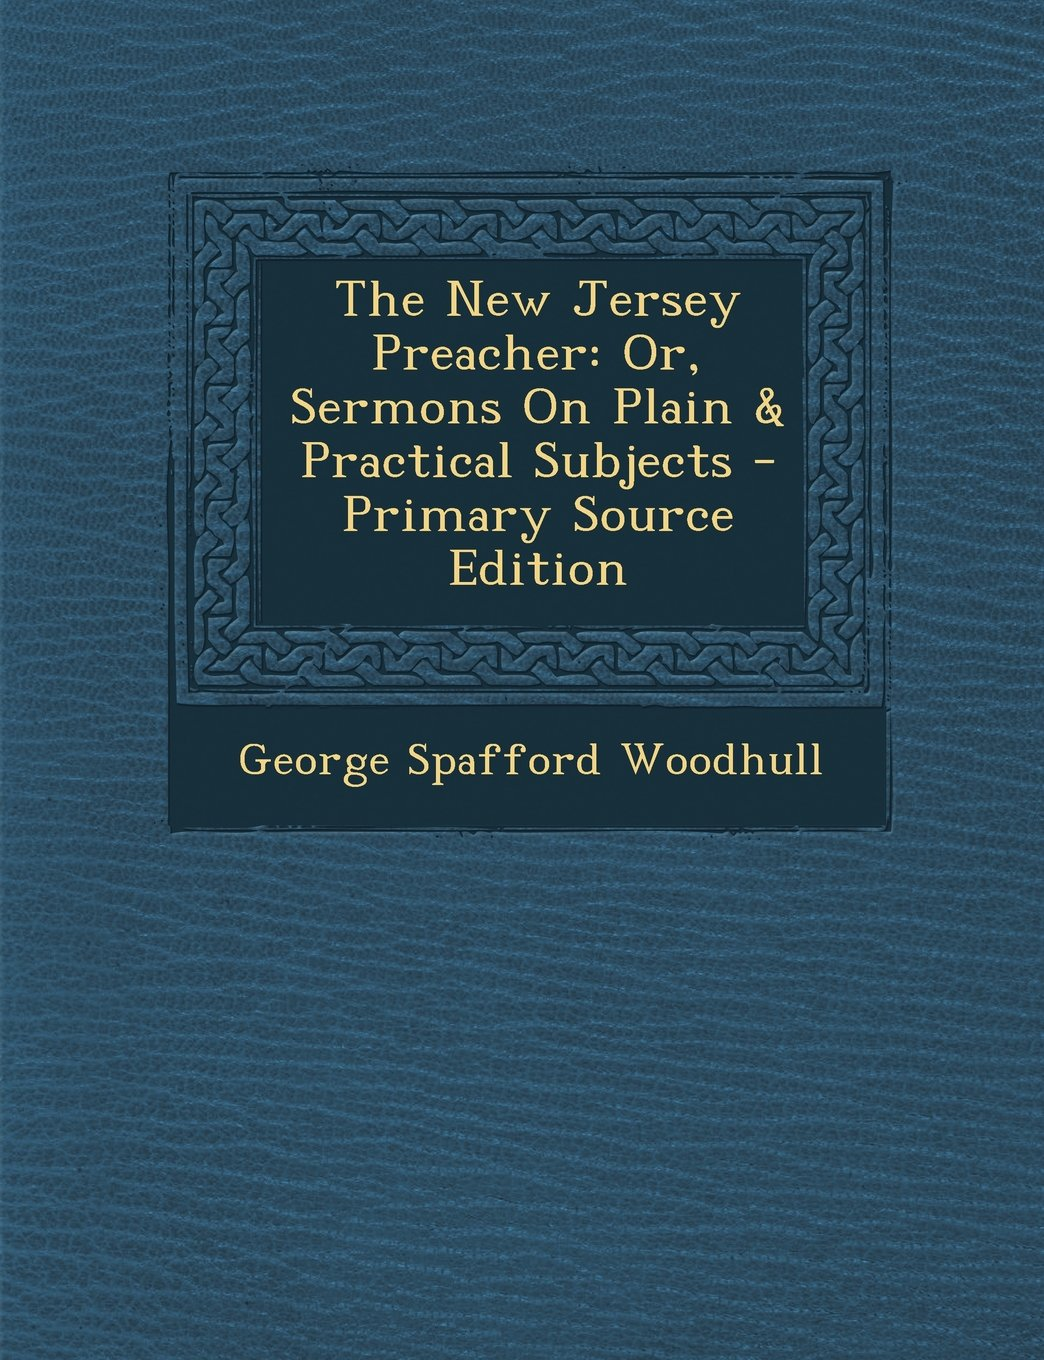 Download The New Jersey Preacher: Or, Sermons On Plain & Practical Subjects pdf epub